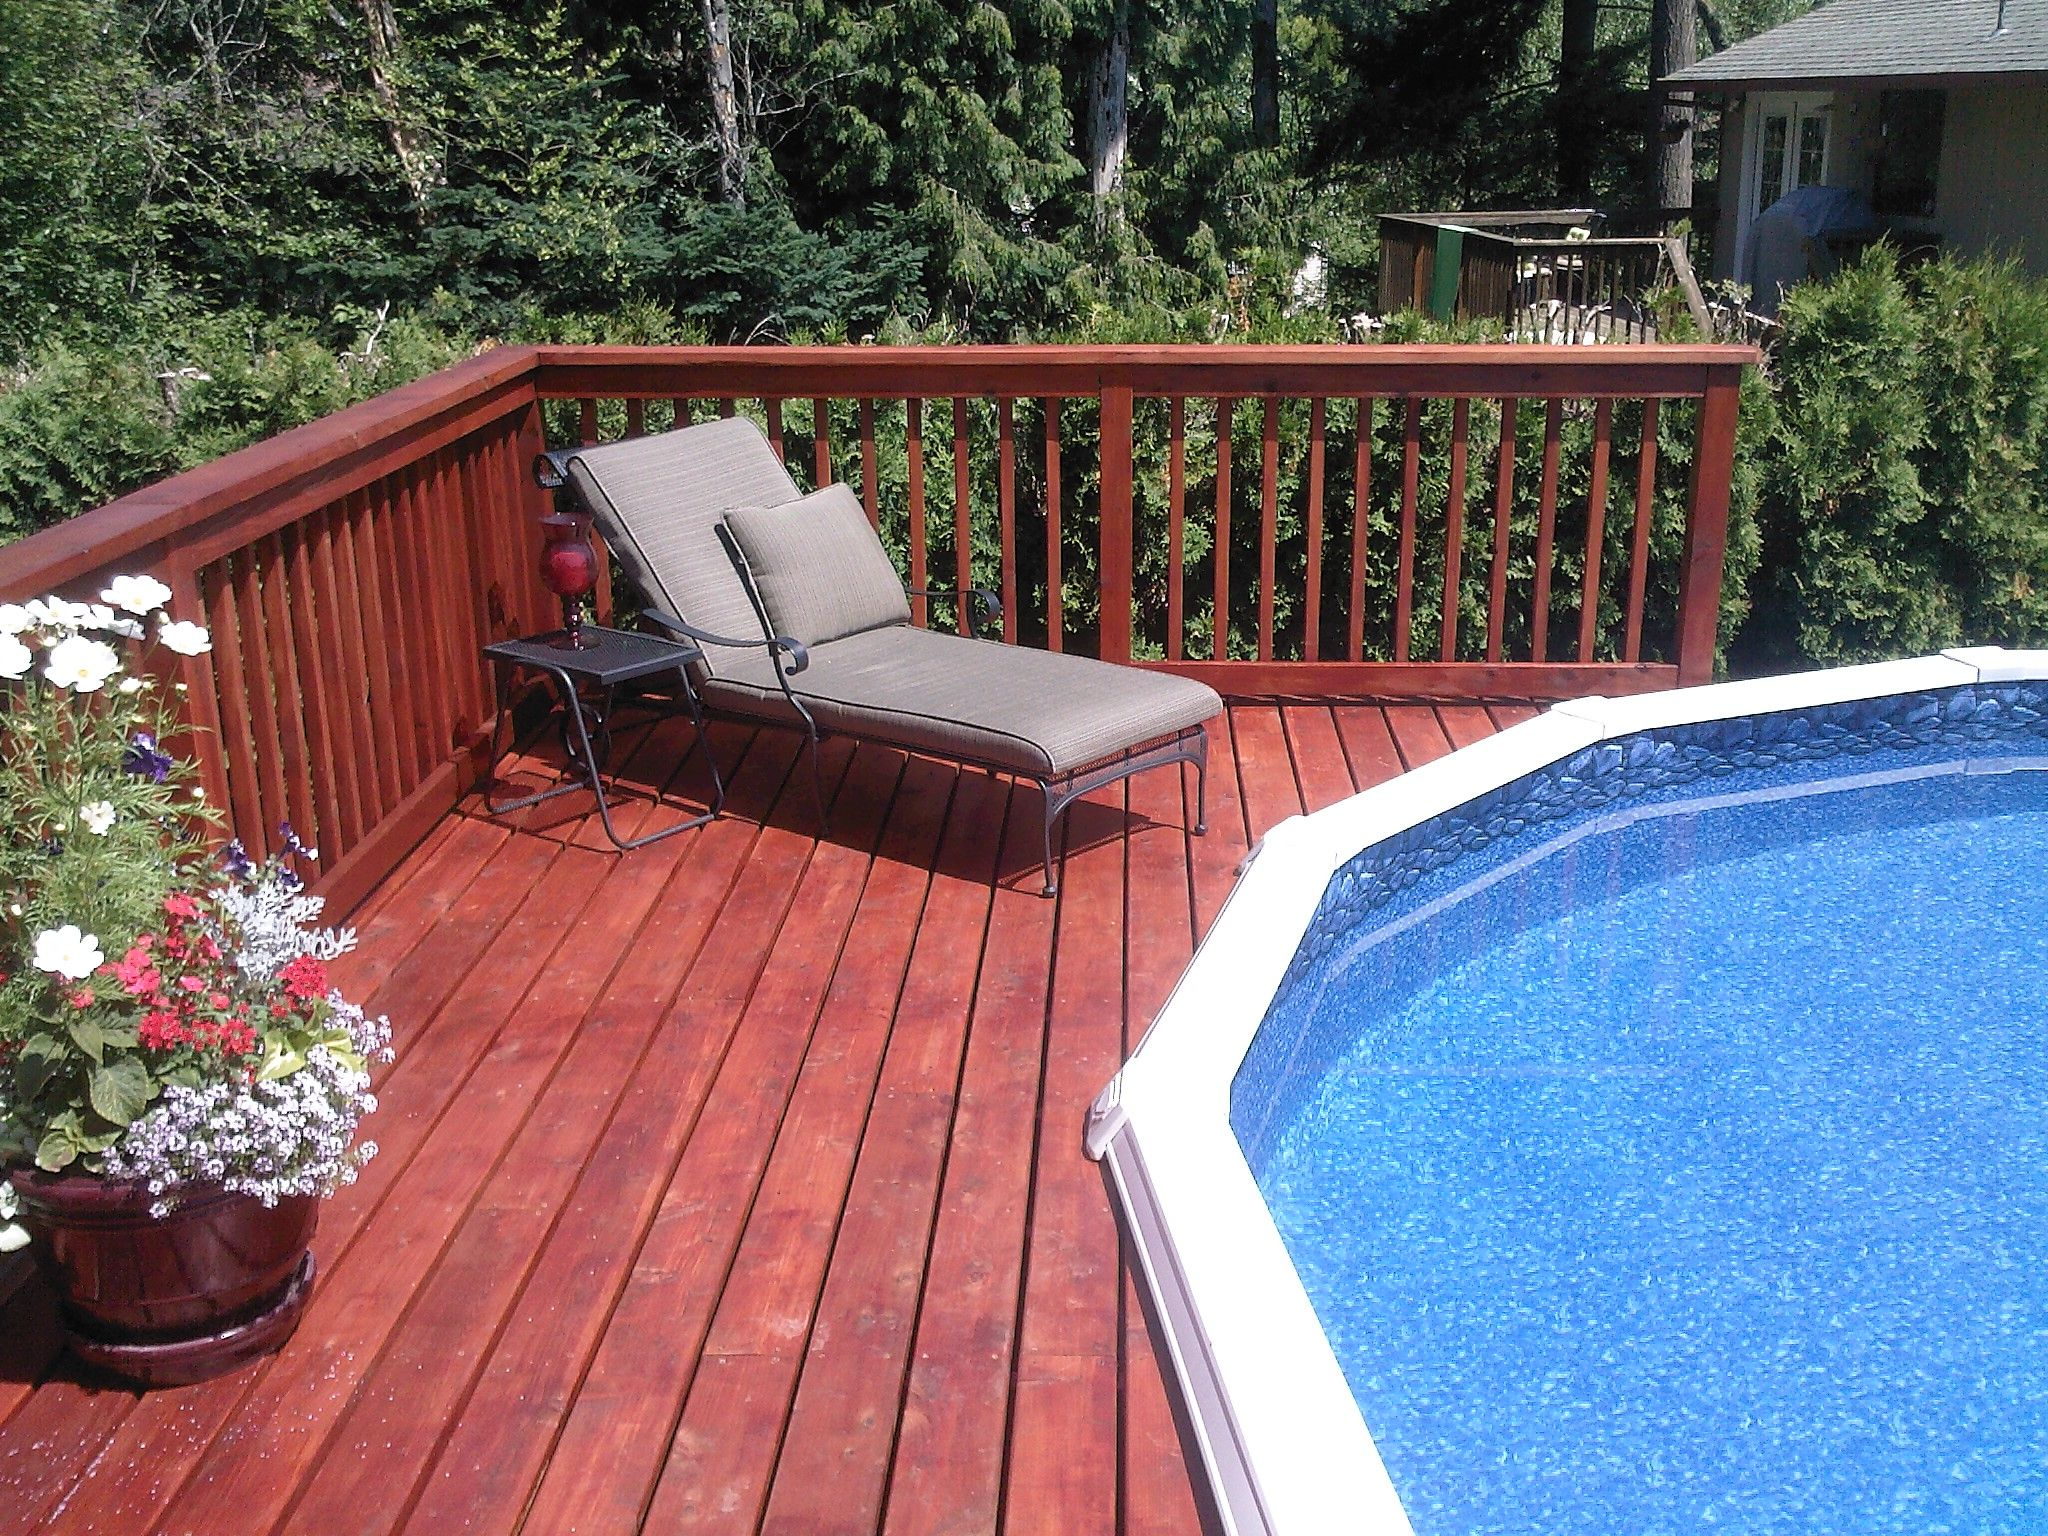 Above Ground Pool Edging Ideas aboveground pool remodeling ideas radiant pools Above Ground Pool Decks Above Ground Pool Deck Get The Facts Patio Deck